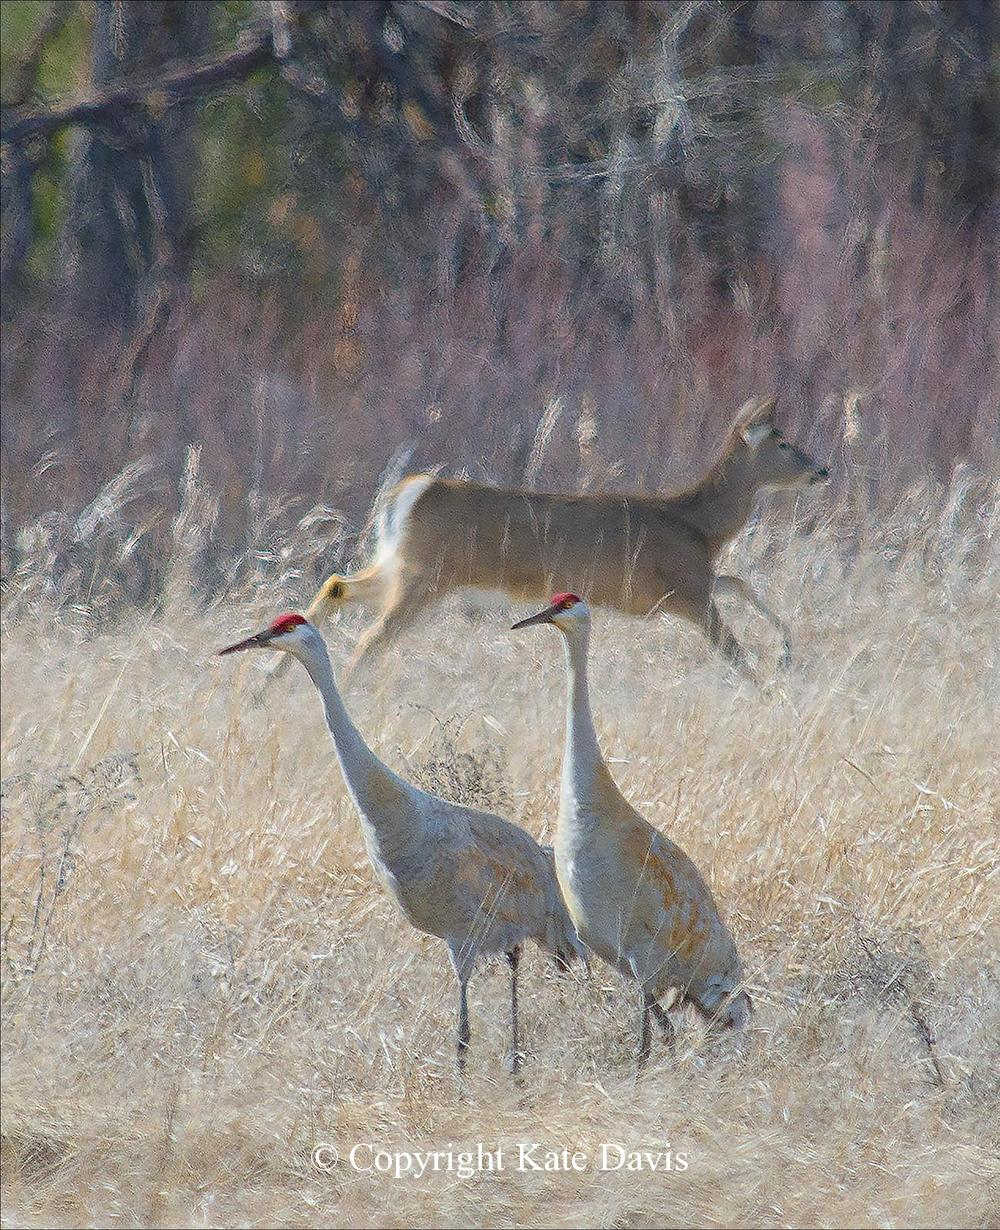 Song Bird Photos - Sandhill Cranes - Shore Bird Photos - Sandhill Cranes/White-tail Deer at Lee Metcalf refuge in the summer